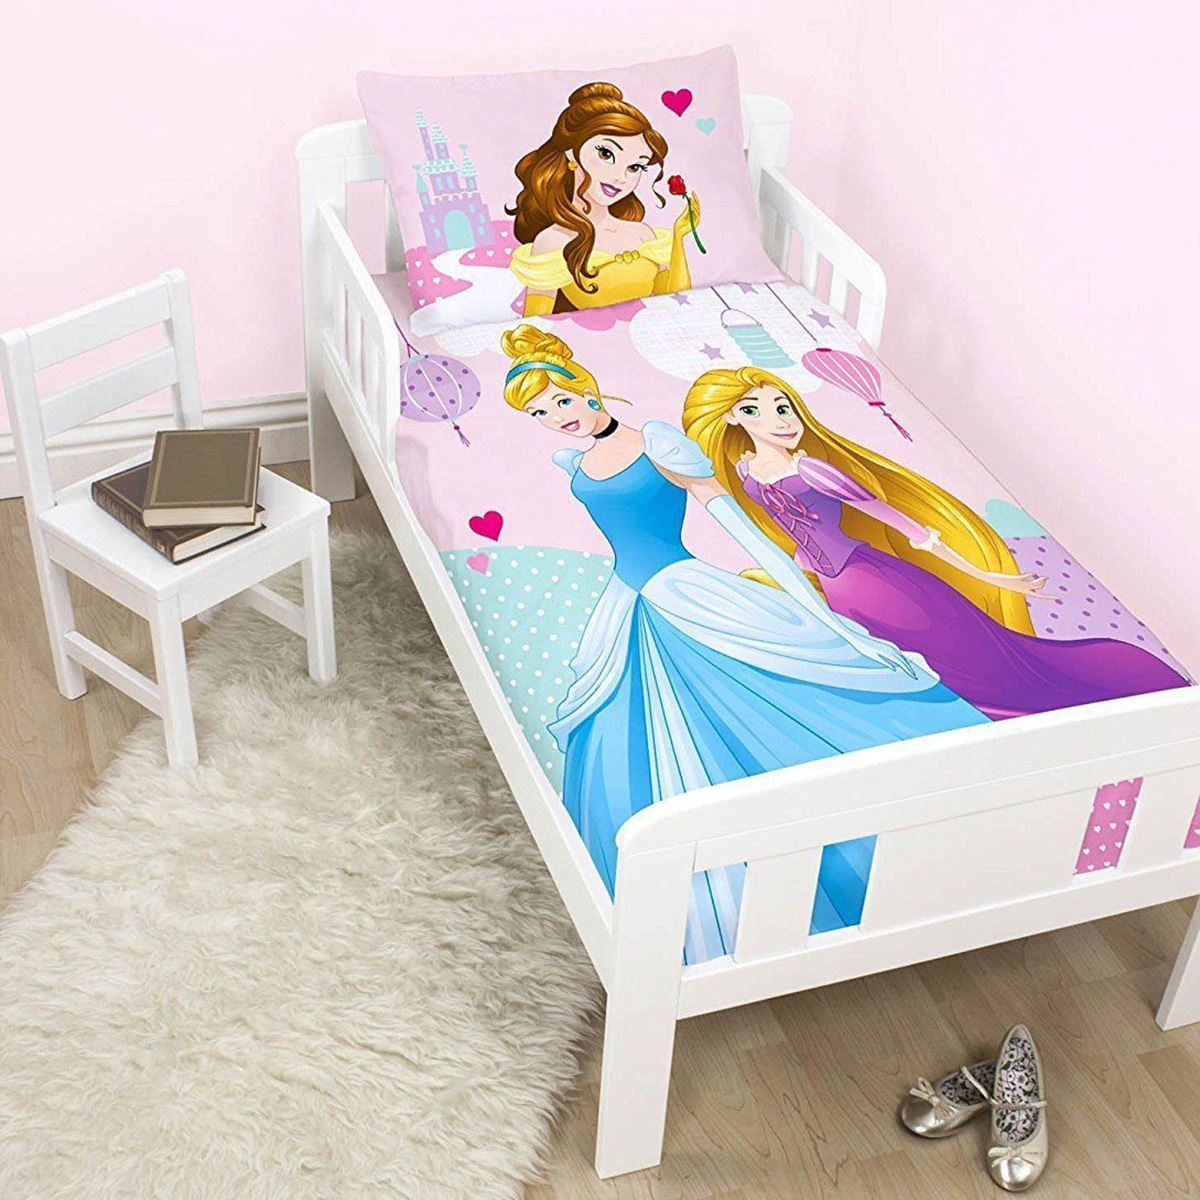 disney princess junior couverture duvet de lit b 233 b 233 new parure filles eur 18 51 picclick fr